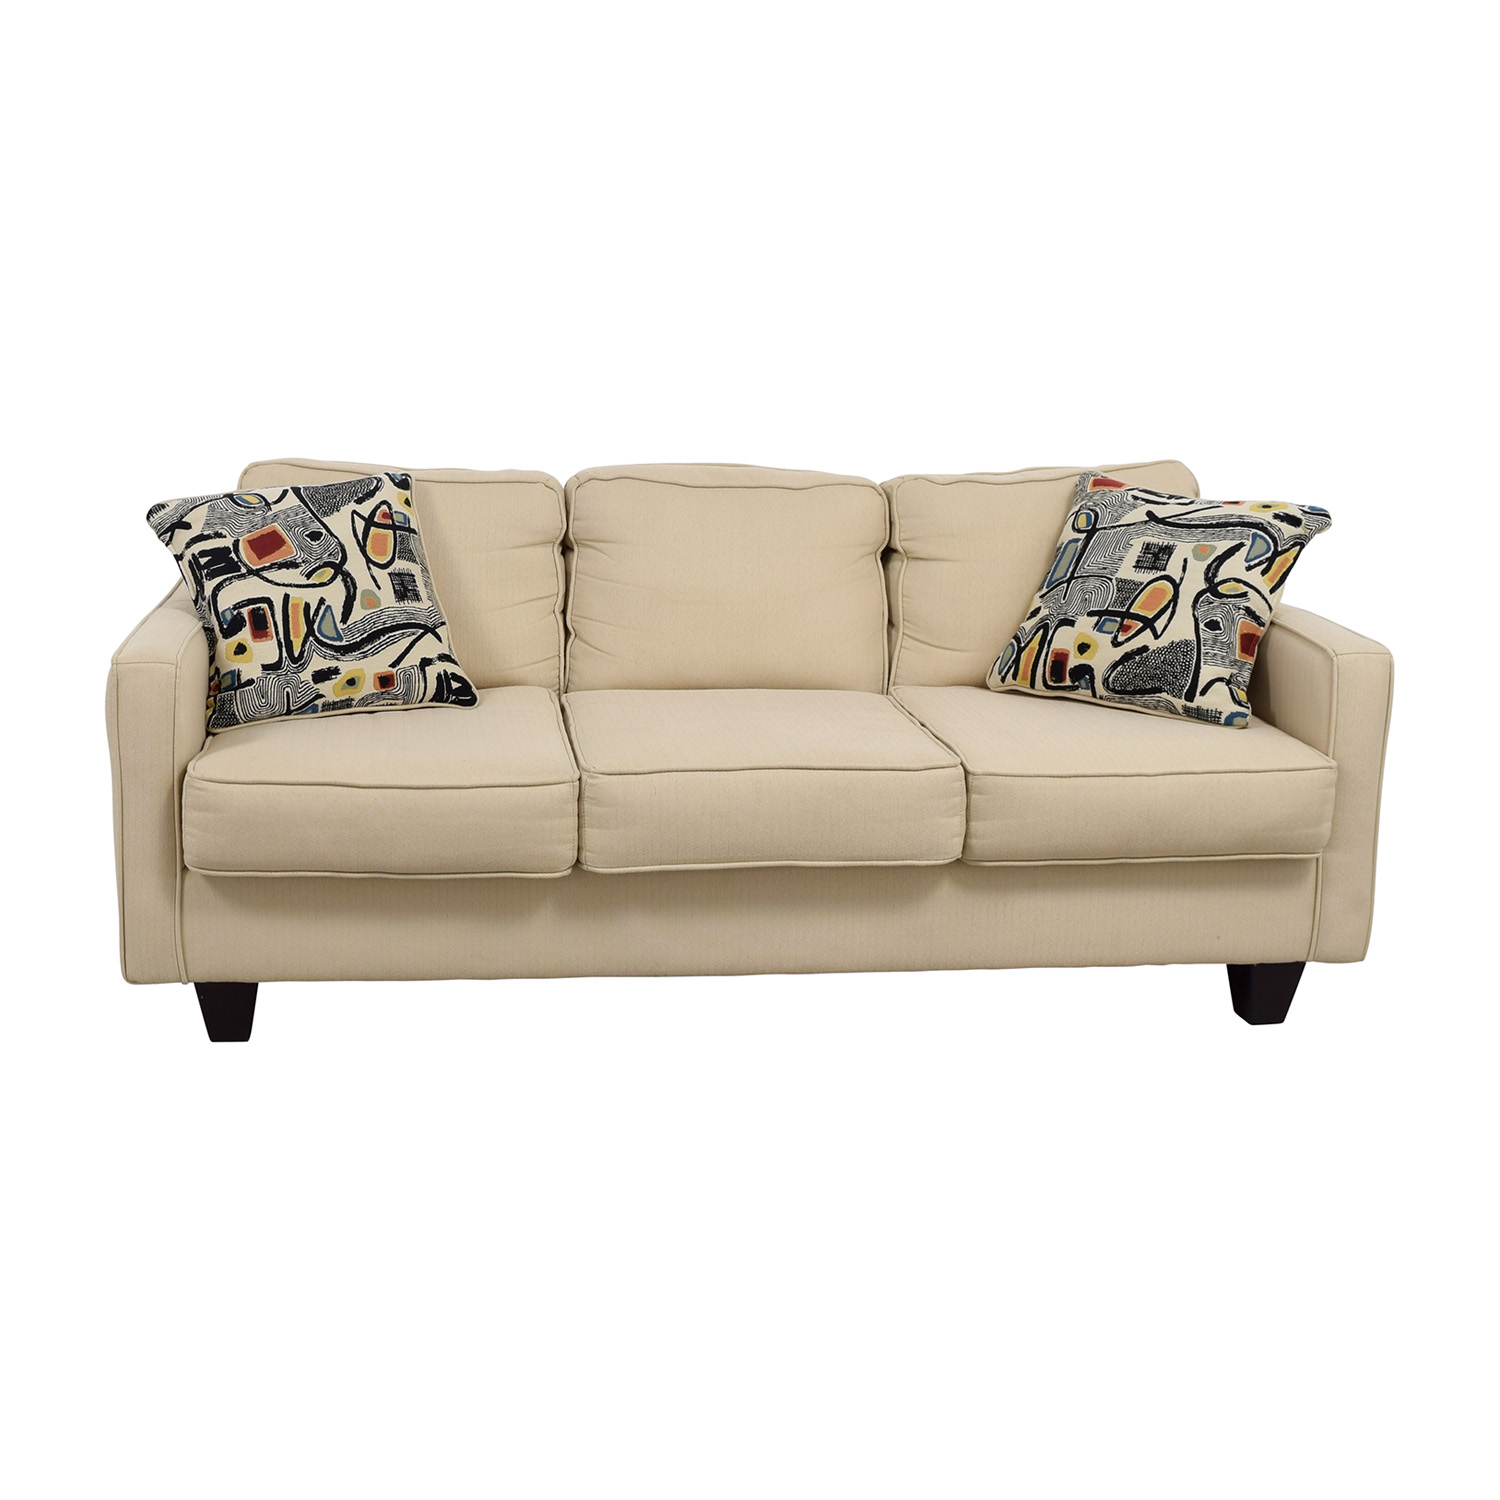 Serta Serta Tan Three-Cushion Sofa second hand